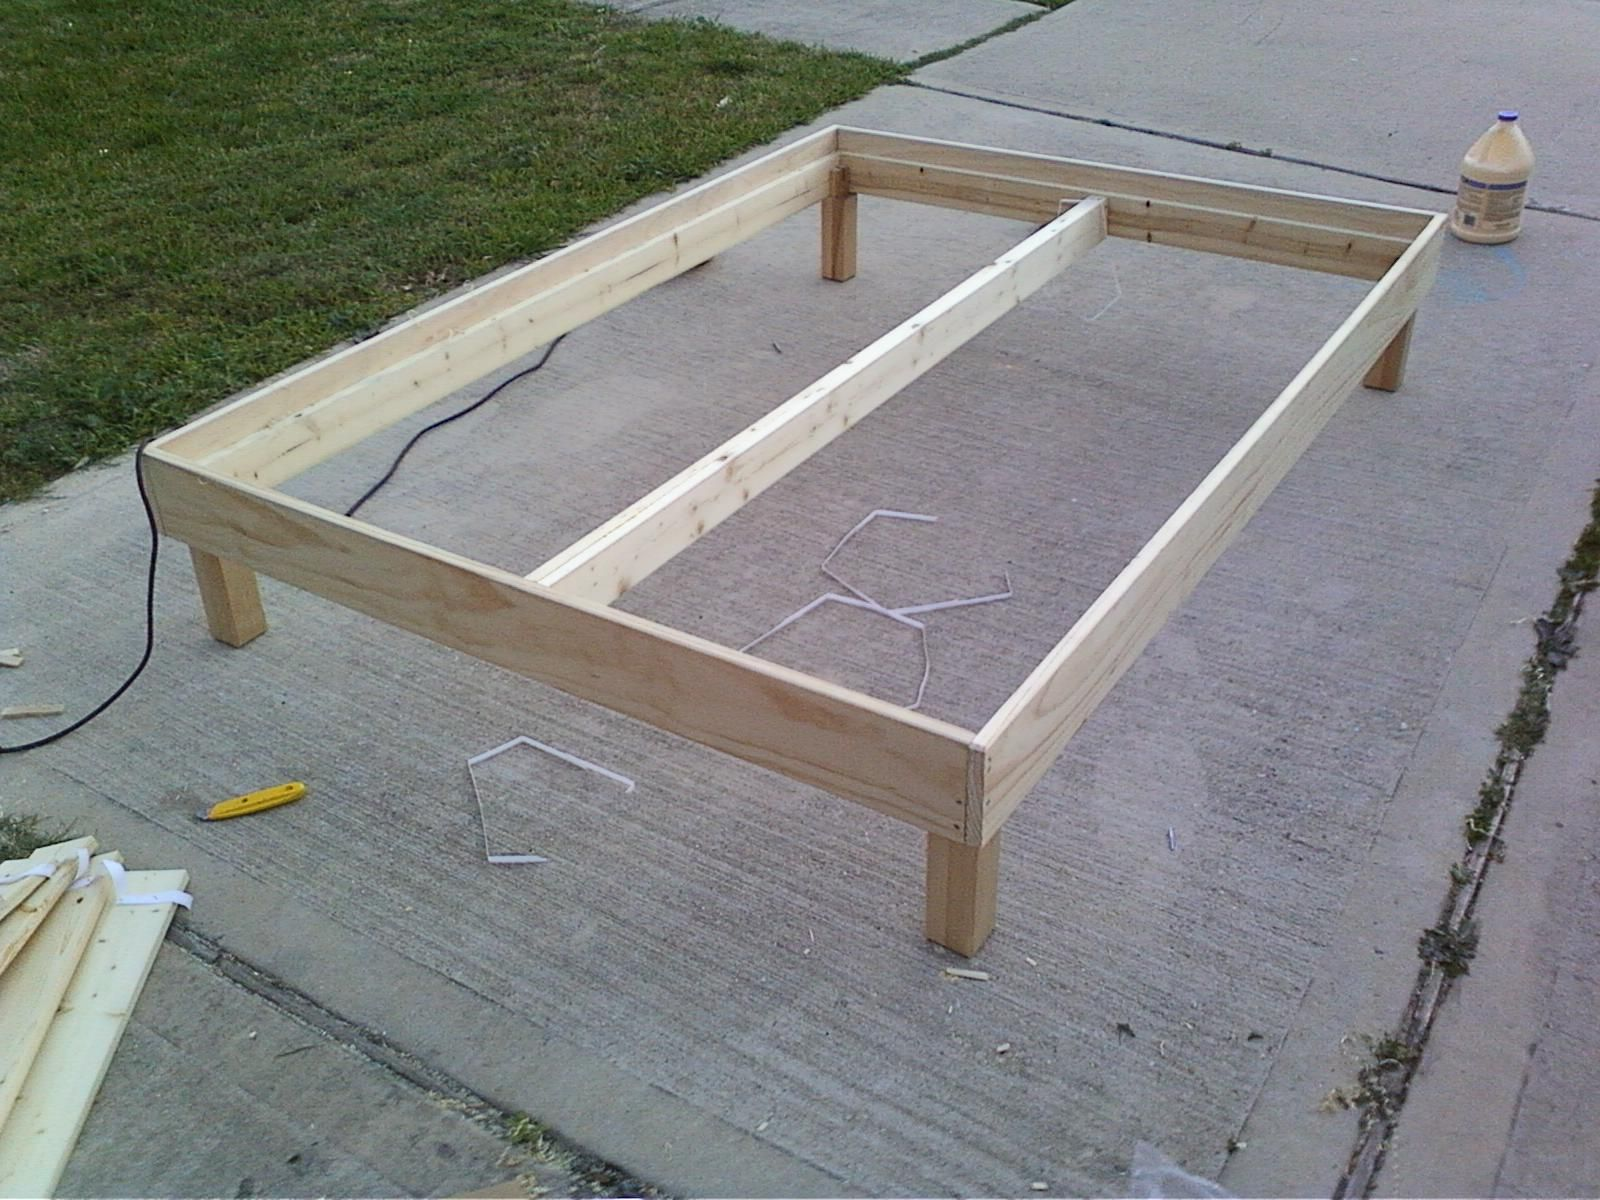 Bed Frame   He Said It Cost $150 In Materials But That Seems High